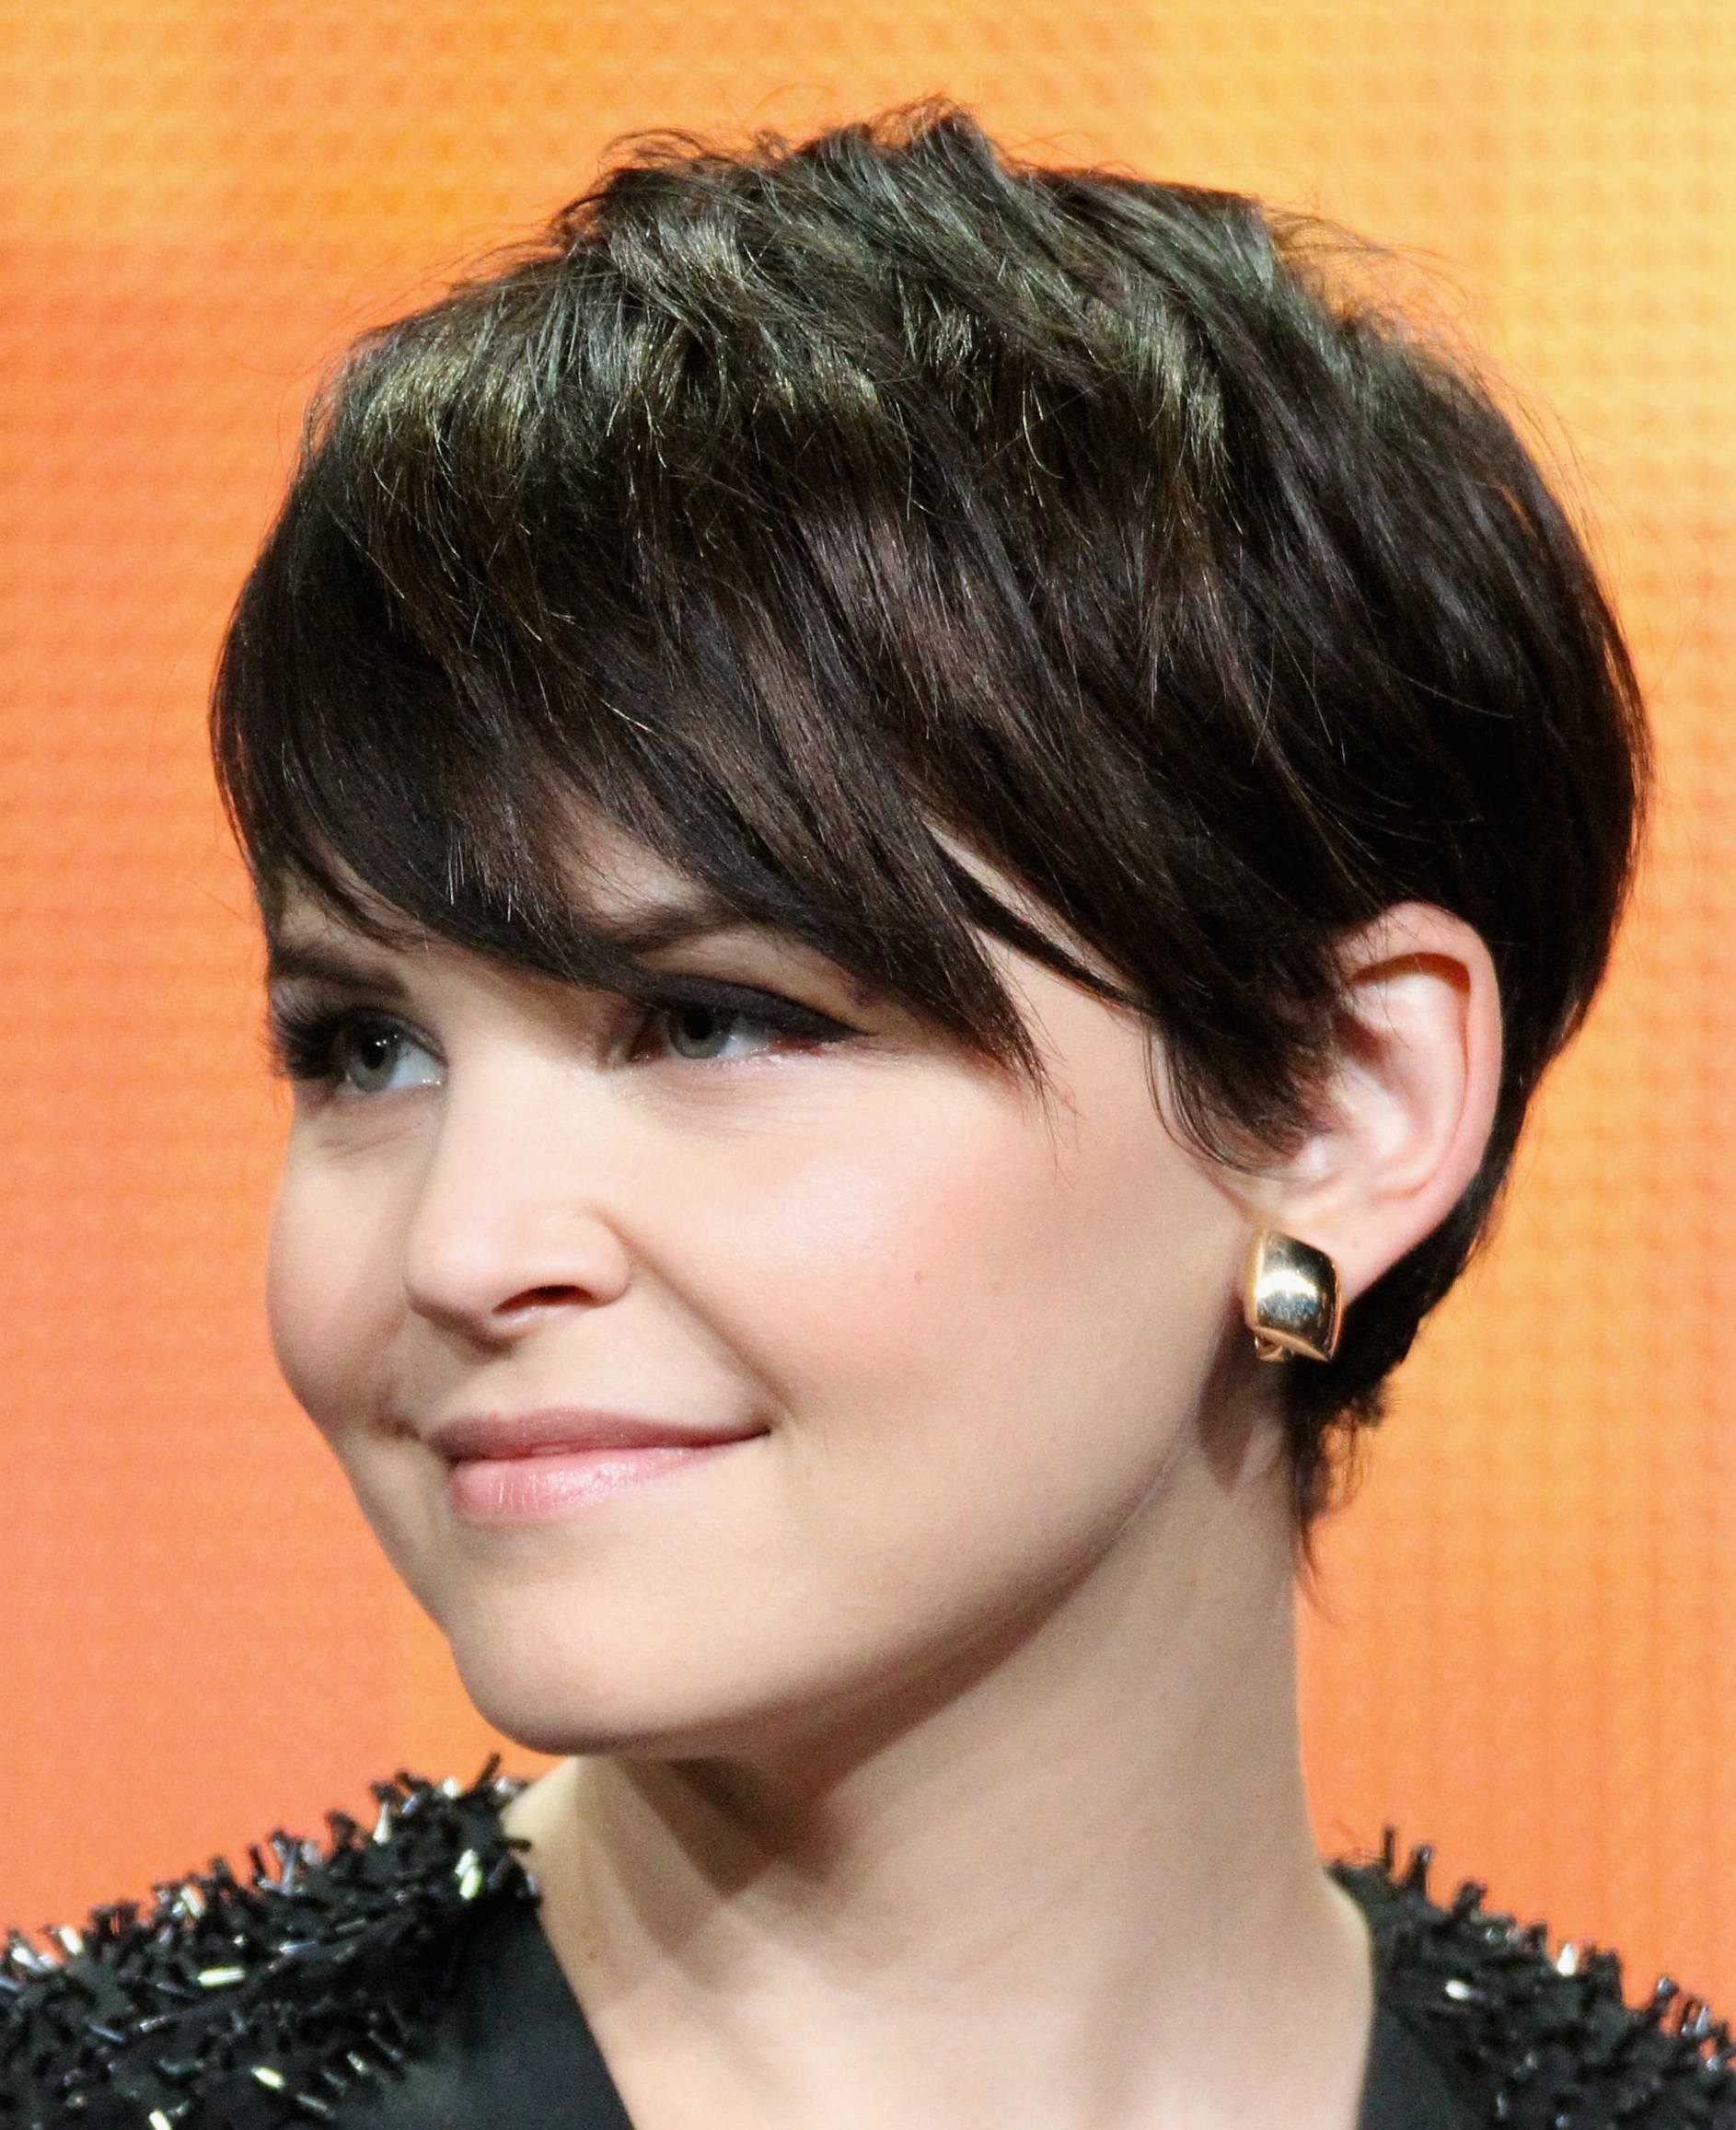 Tousled Pixie Cut Carey Mulligan Viewing Gallery